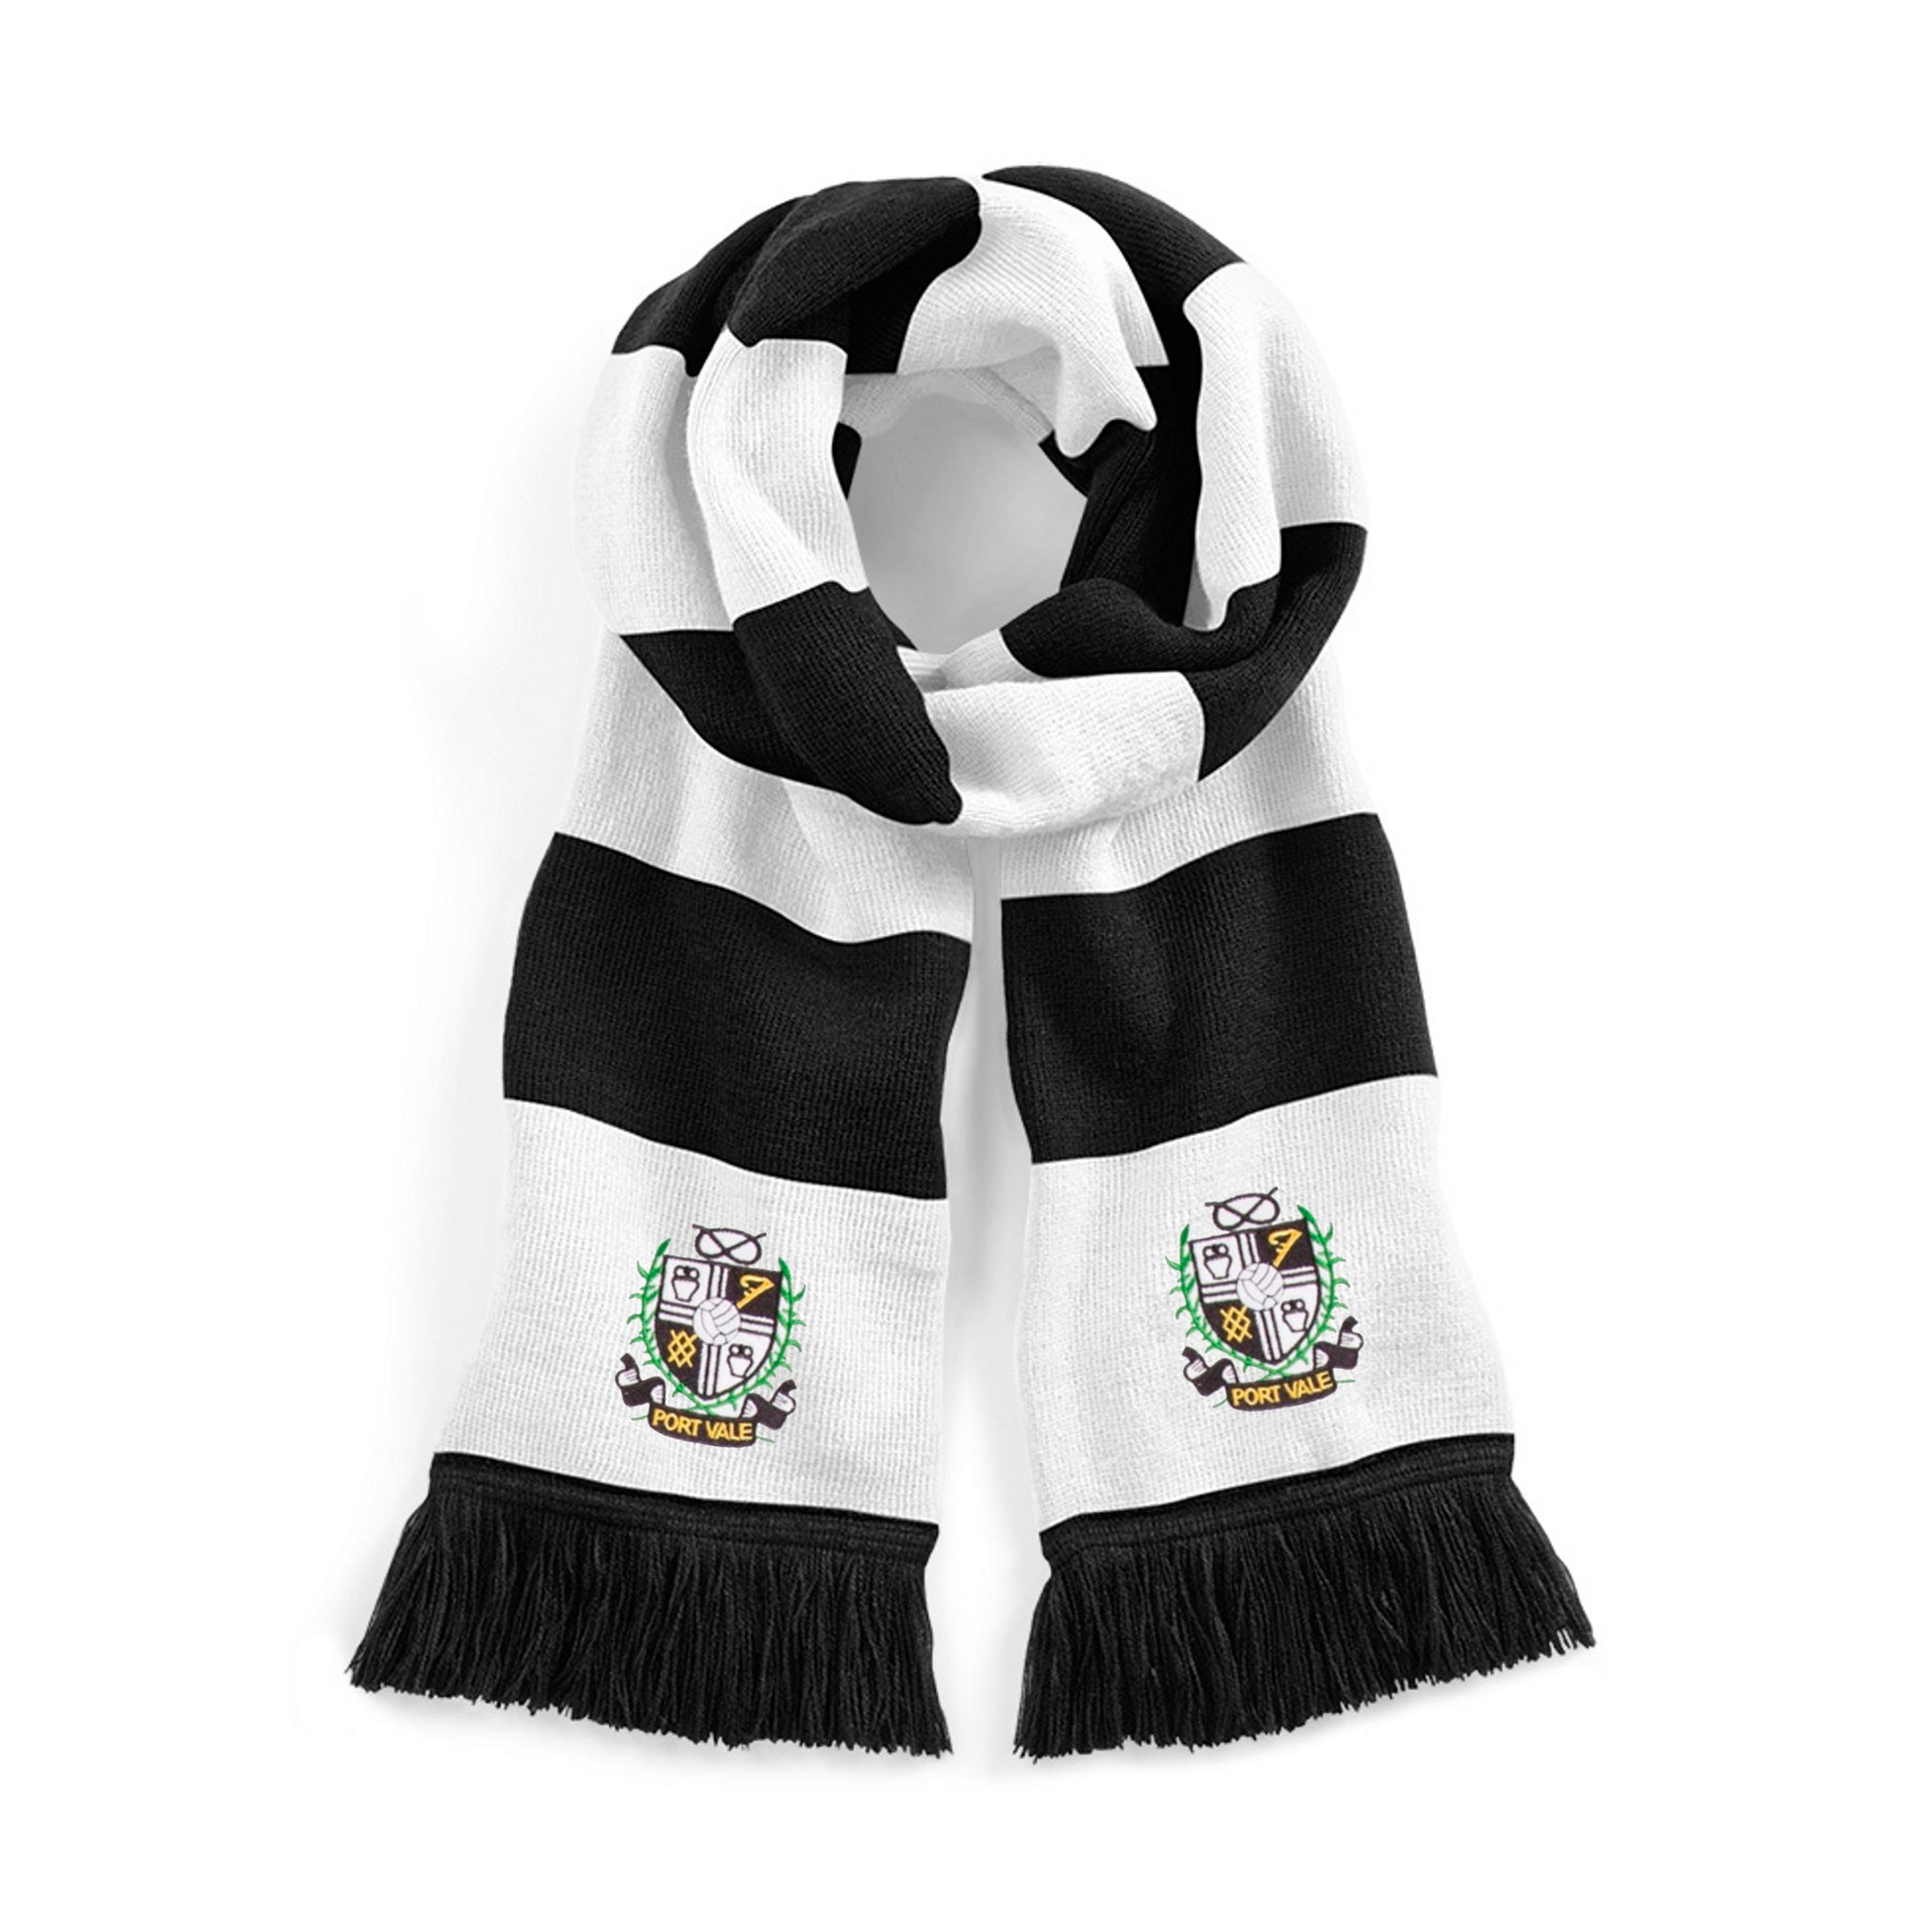 Port Vale Retro 1960s Traditional Football Scarf - Scarf